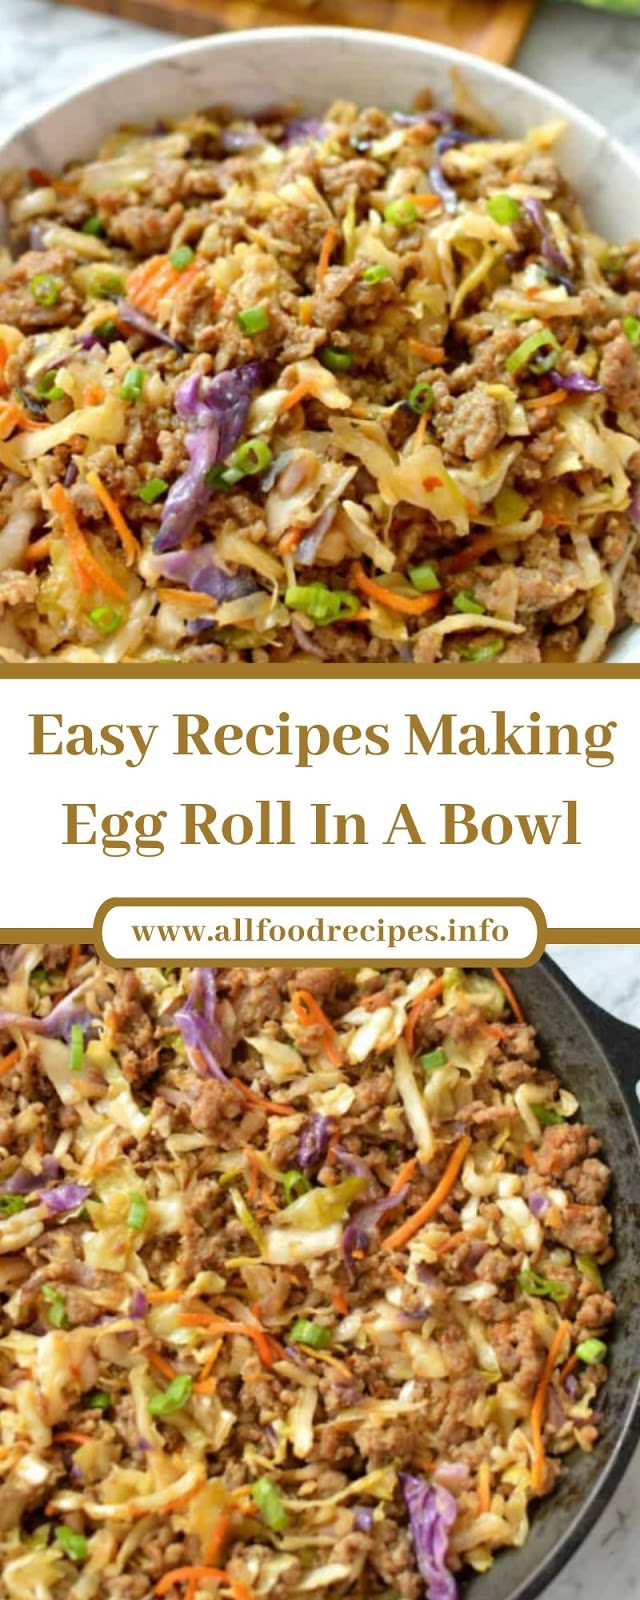 Easy Recipes Making Egg Roll In A Bowl